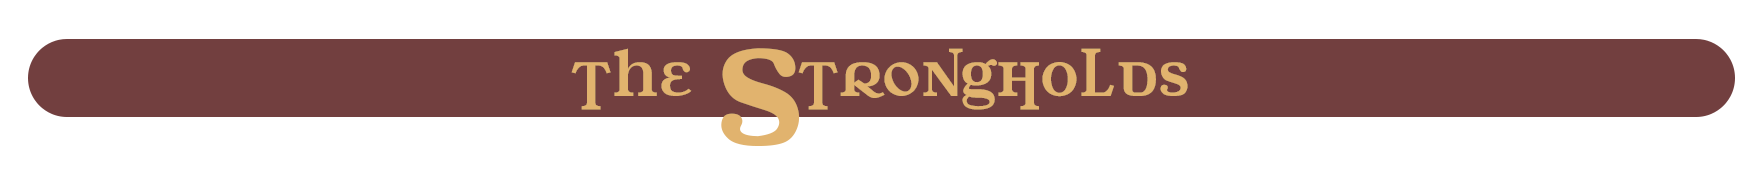 WZAA: The STRONGHOLDS